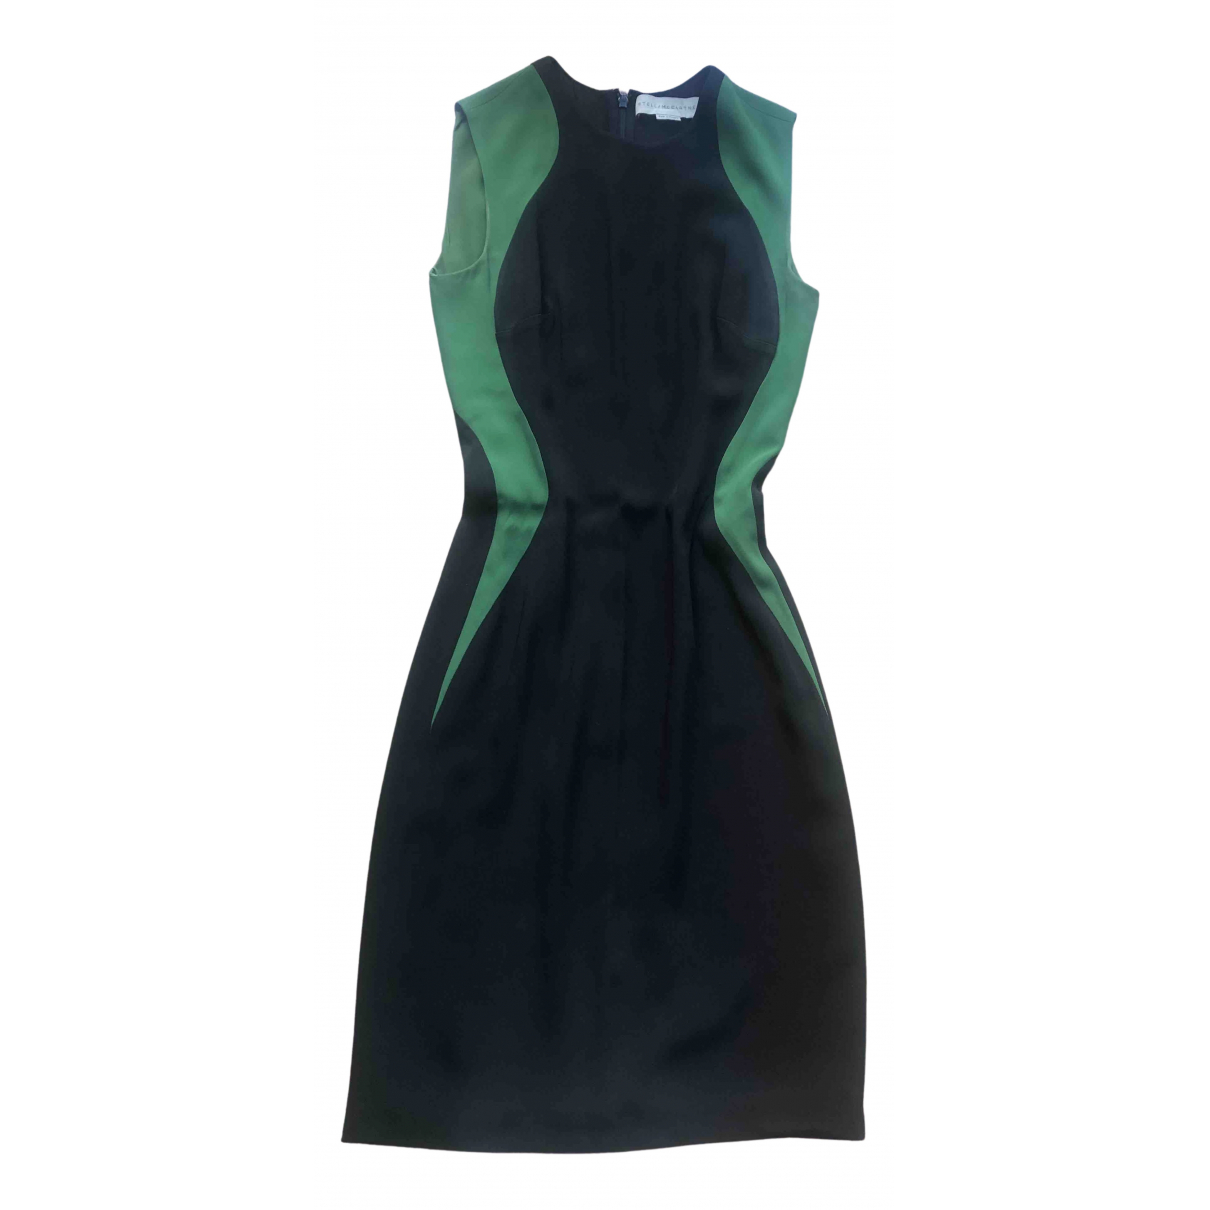 Stella Mccartney N Black dress for Women 38 IT